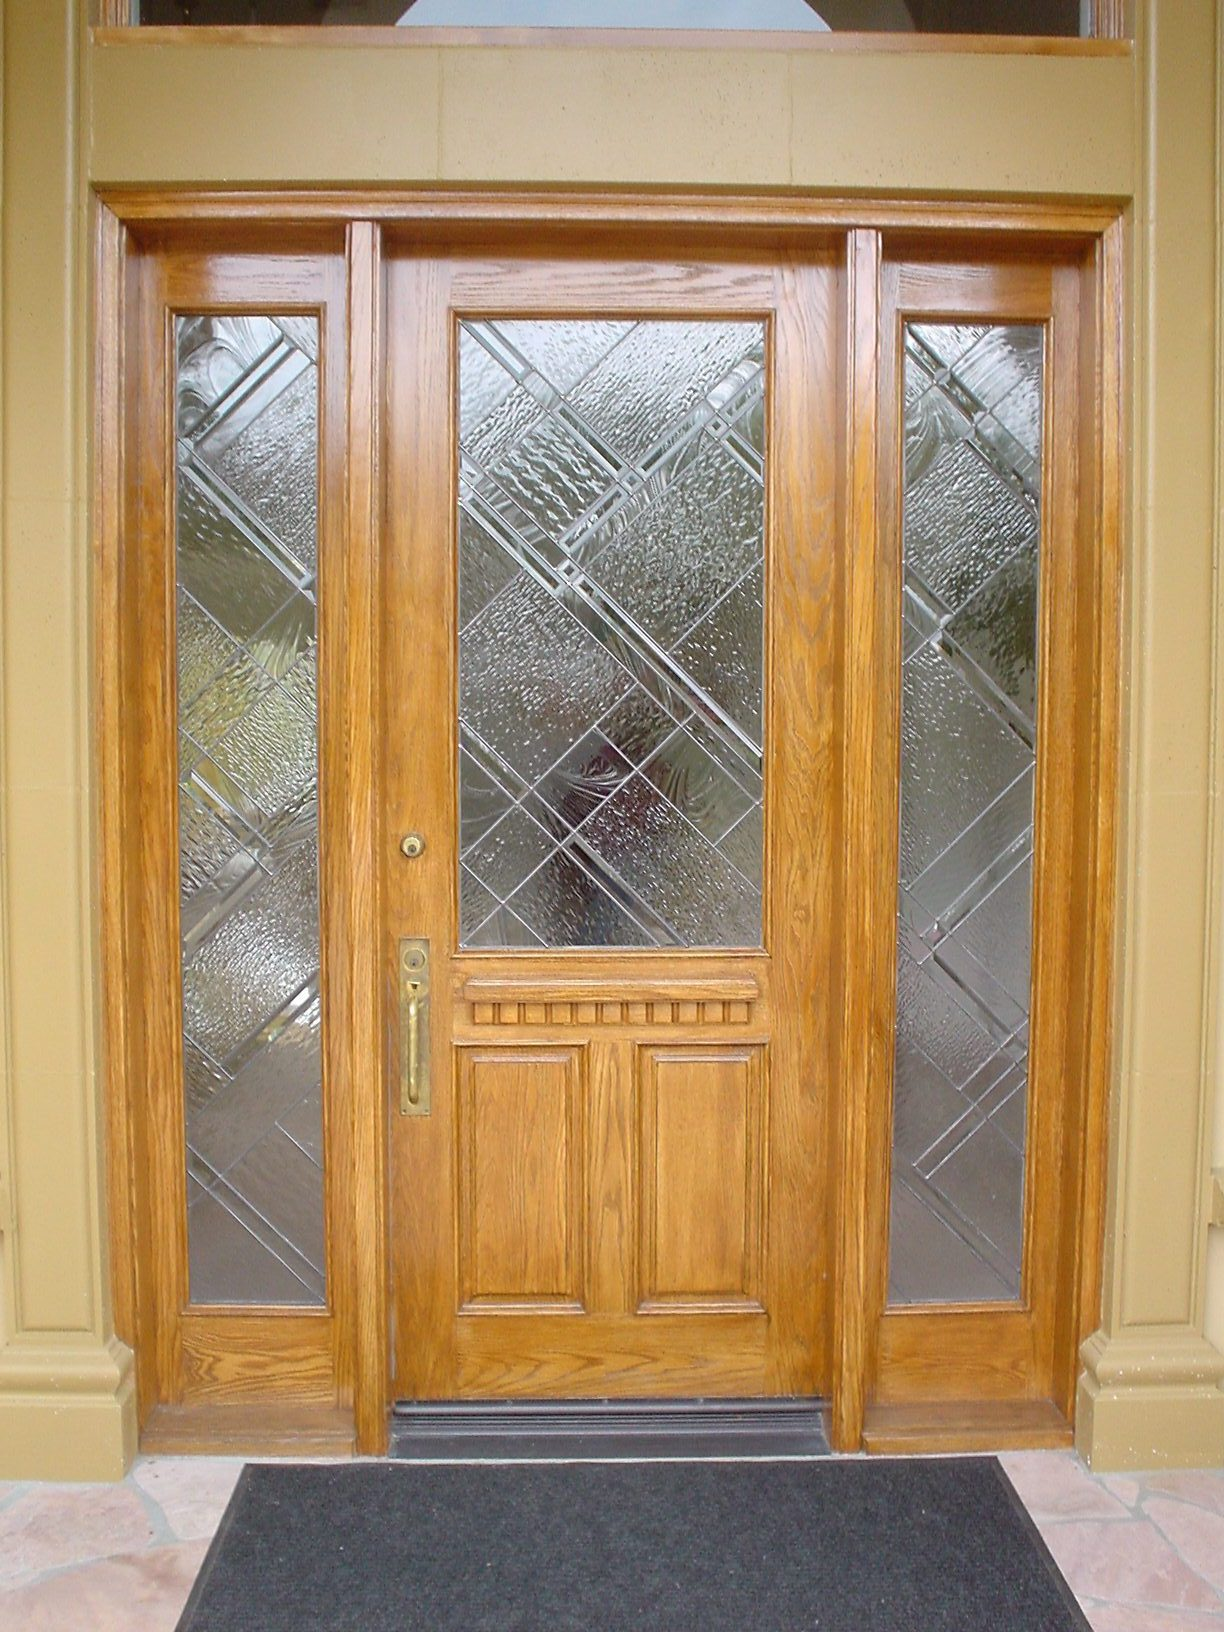 1632 #6F4320 Abstract Entry Door & Sidelites Architectural Stained Glass wallpaper Entry Doors With Sidelites 38851224